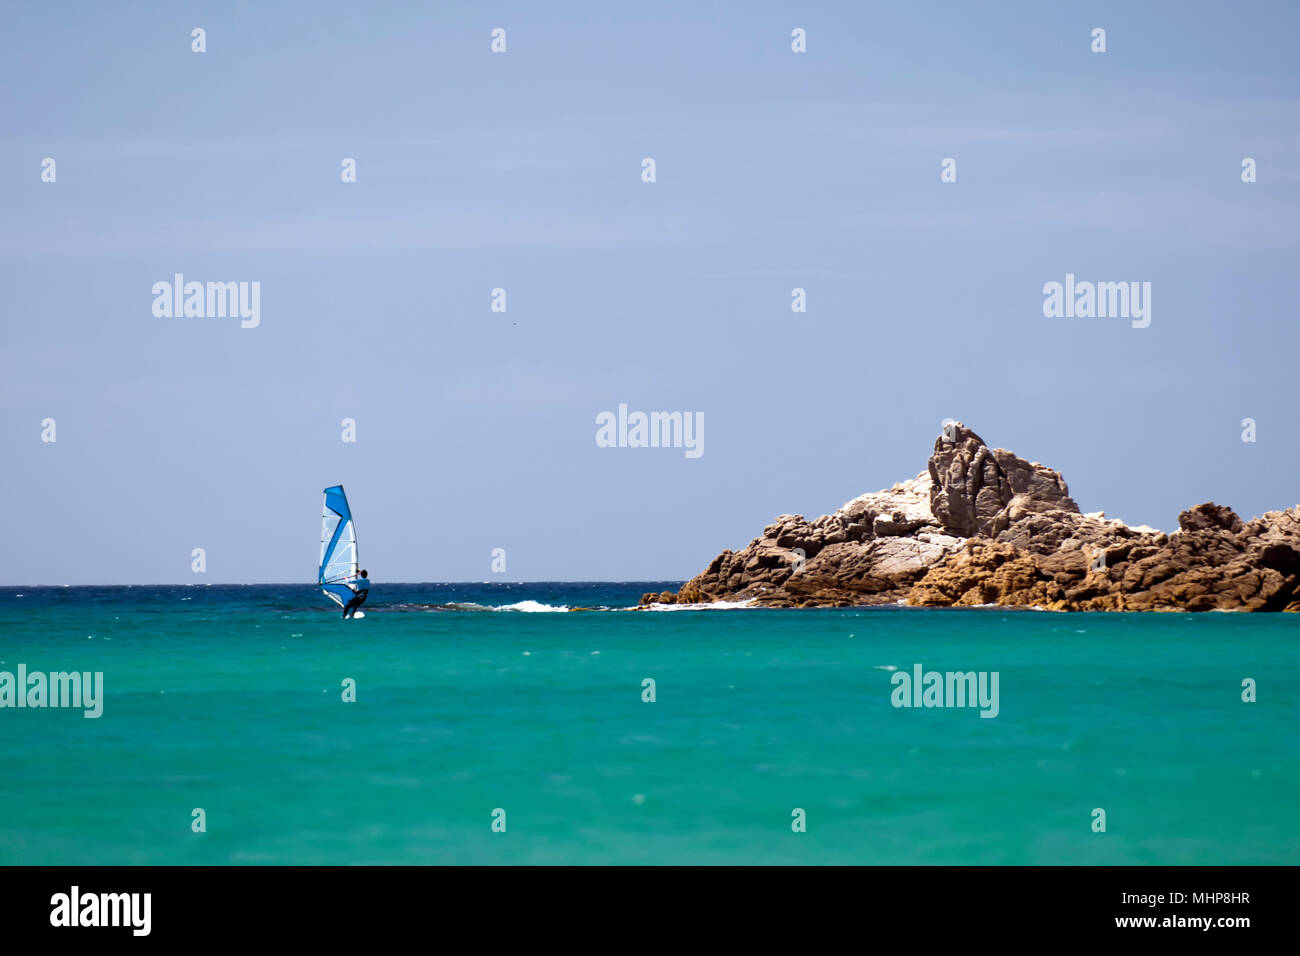 A windsurf in the tourquoise blue sea in Sardinia Italy - Stock Image